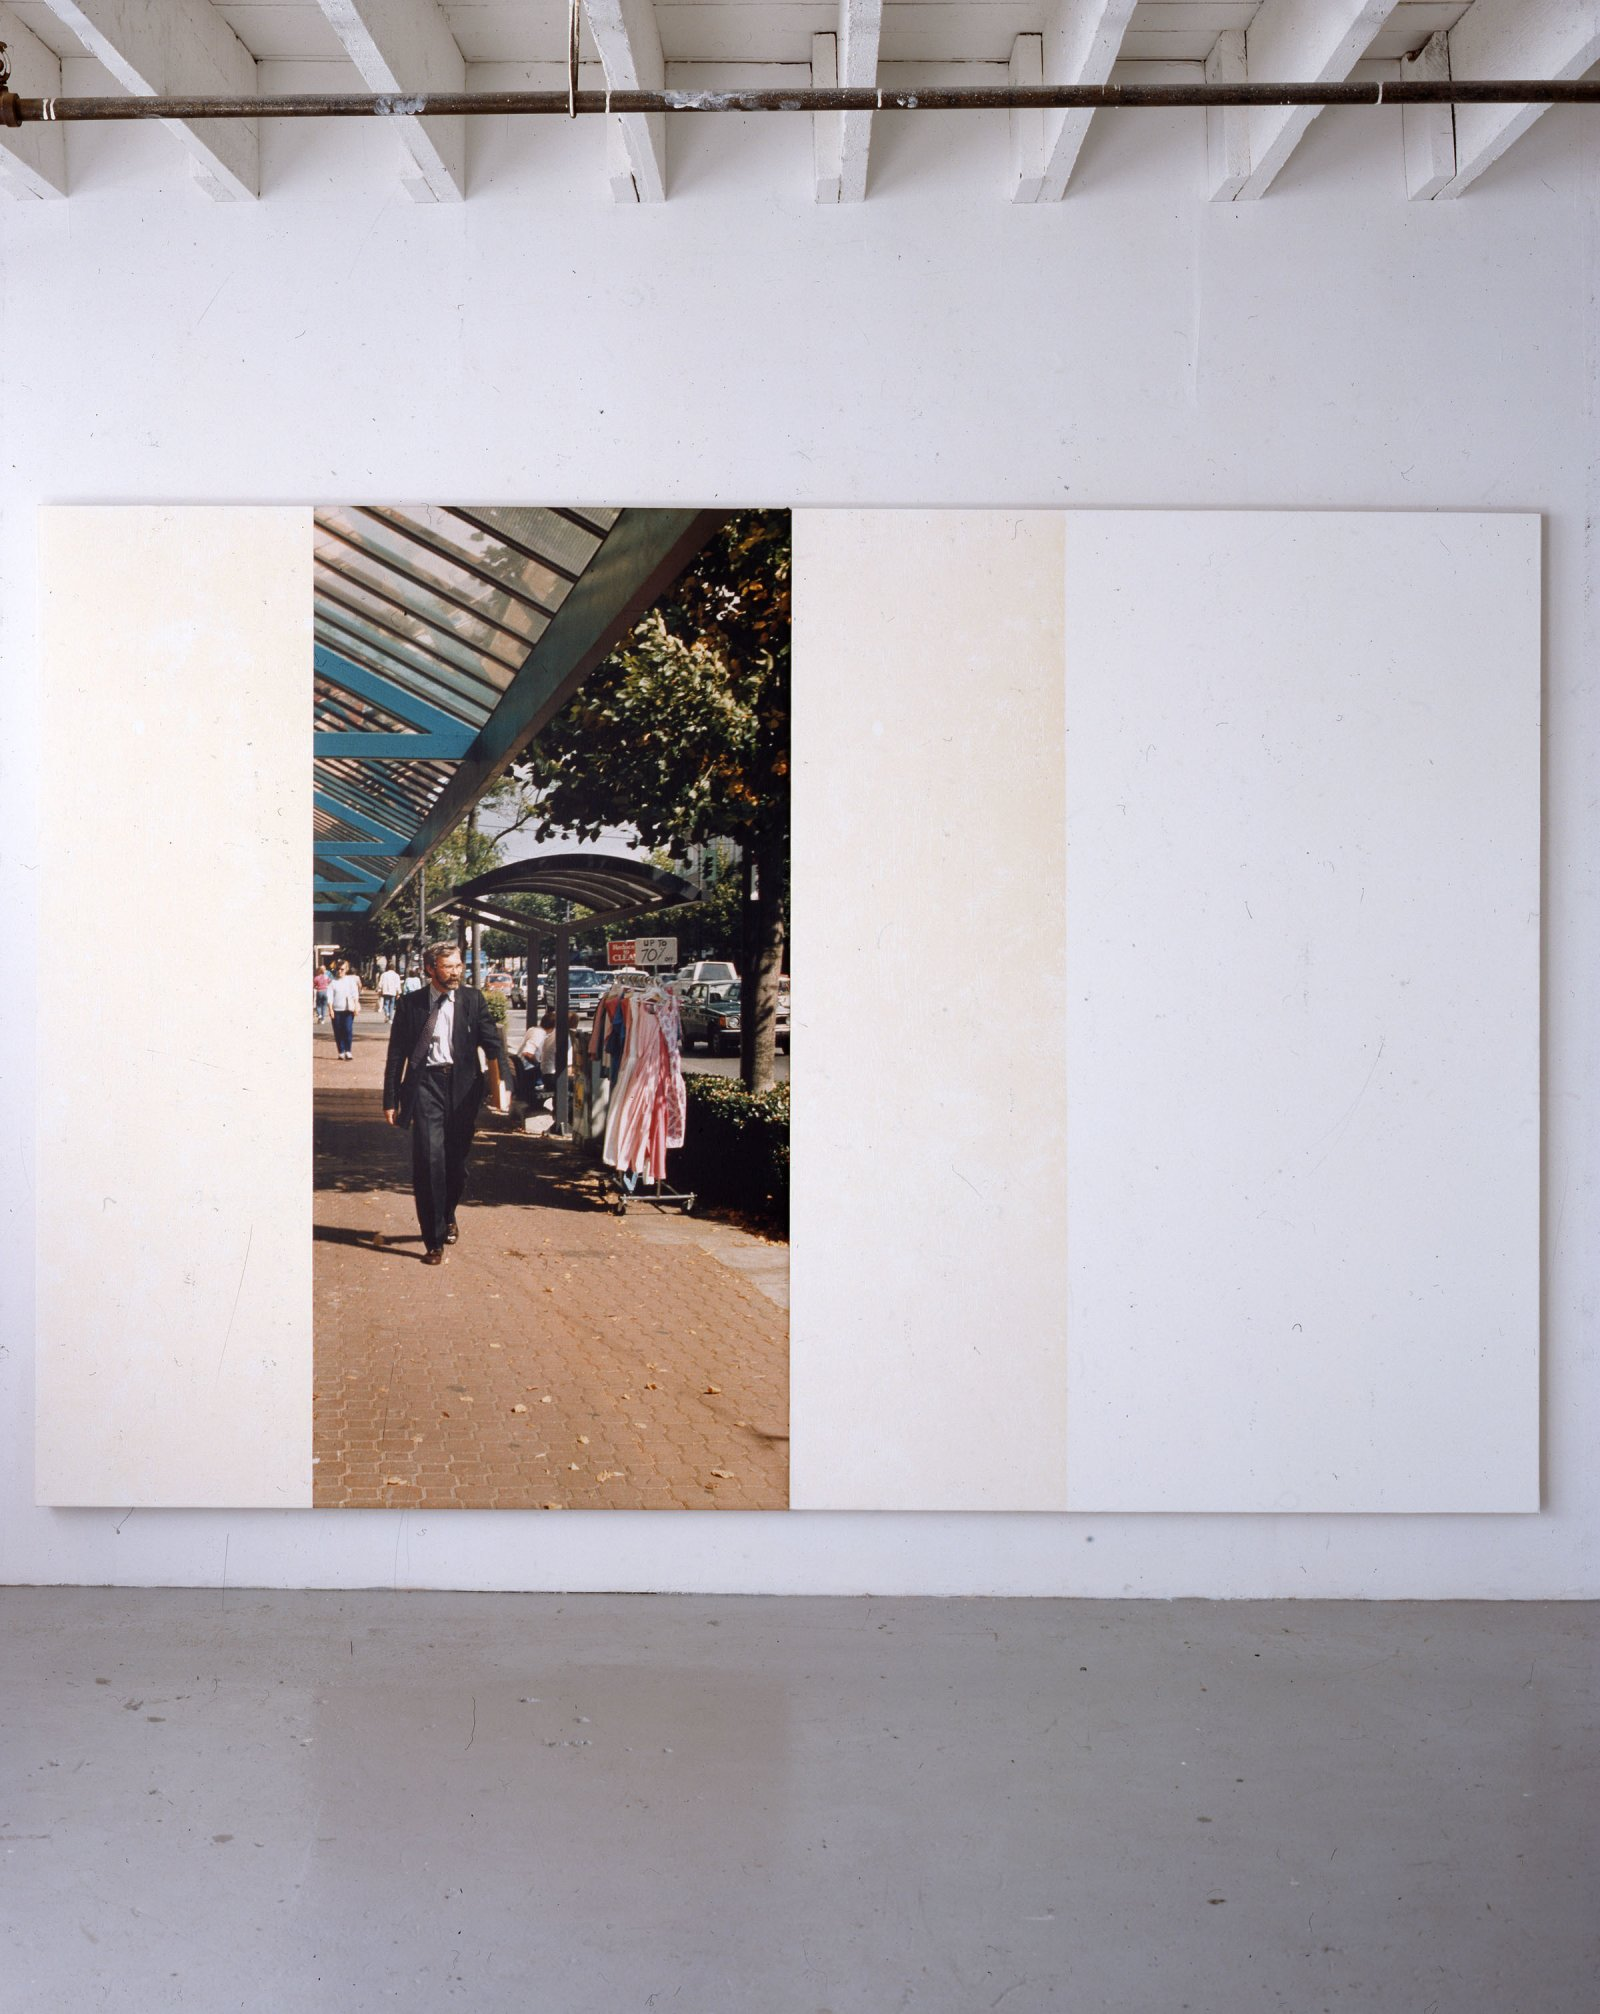 Ian Wallace,In the Street (George), 1988,photolaminate with acrylic and ink monoprint on canvas,96 x 96 in. (244 x 244 cm)